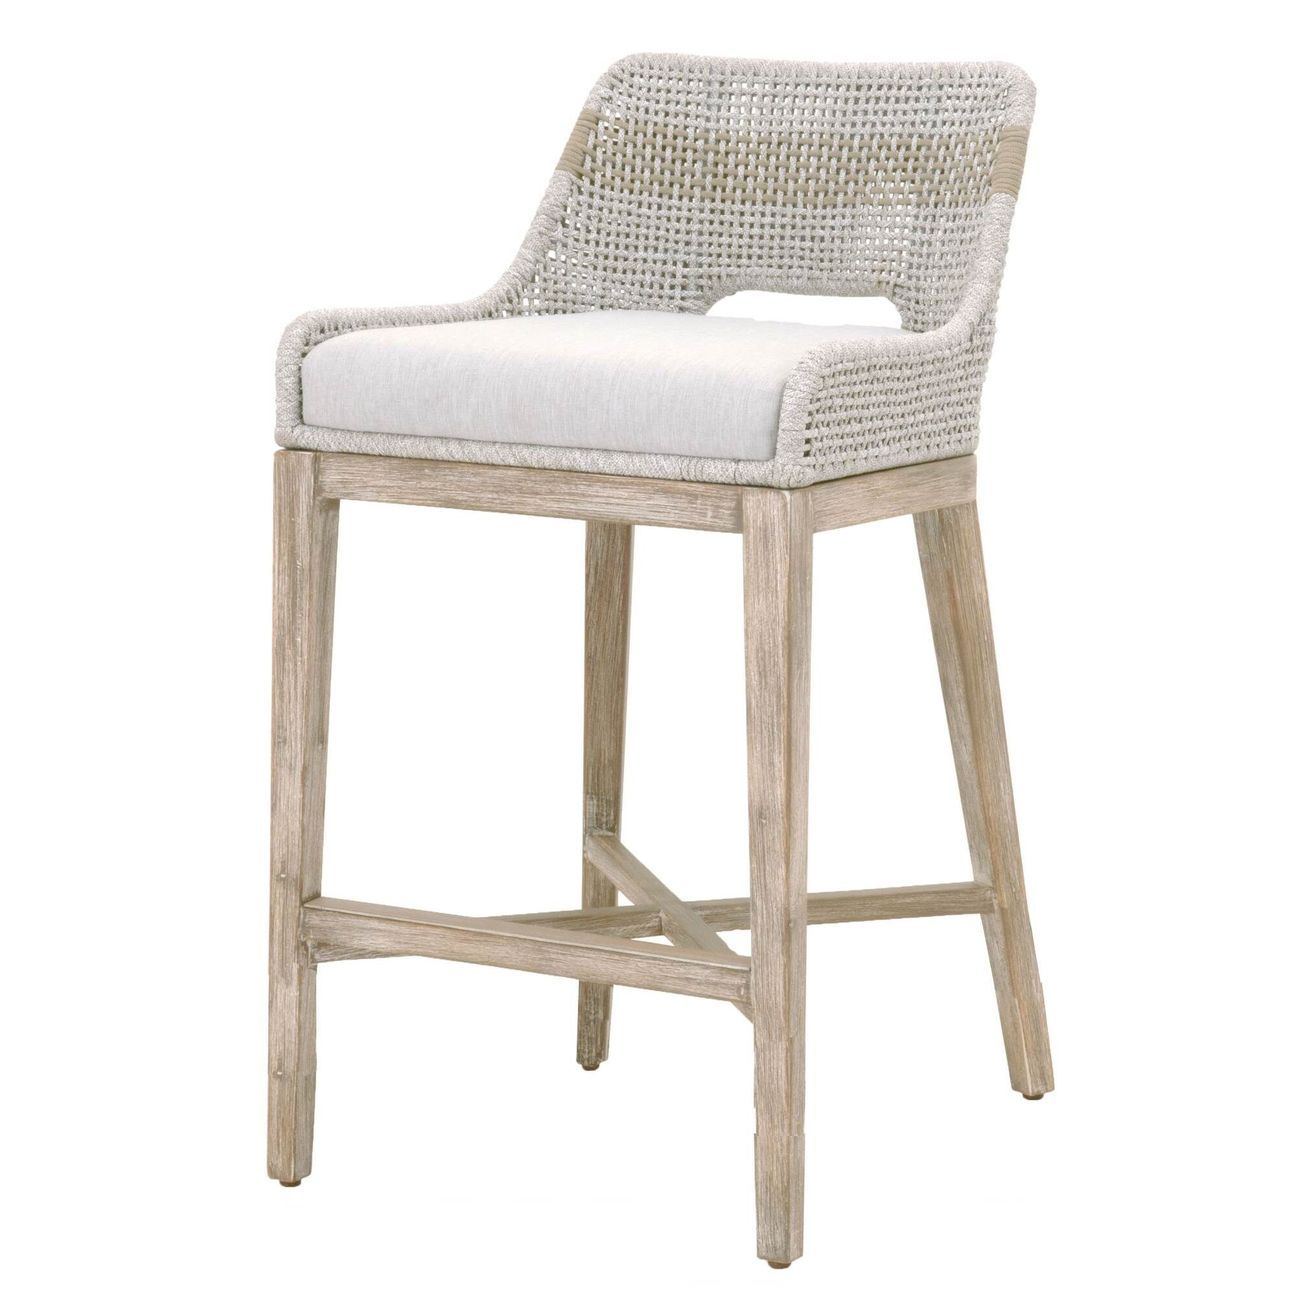 Tapestry Bar Or Counter Stool Taupe White Flat Rope In 2021 Counter Stools Counter Height Stools Furniture